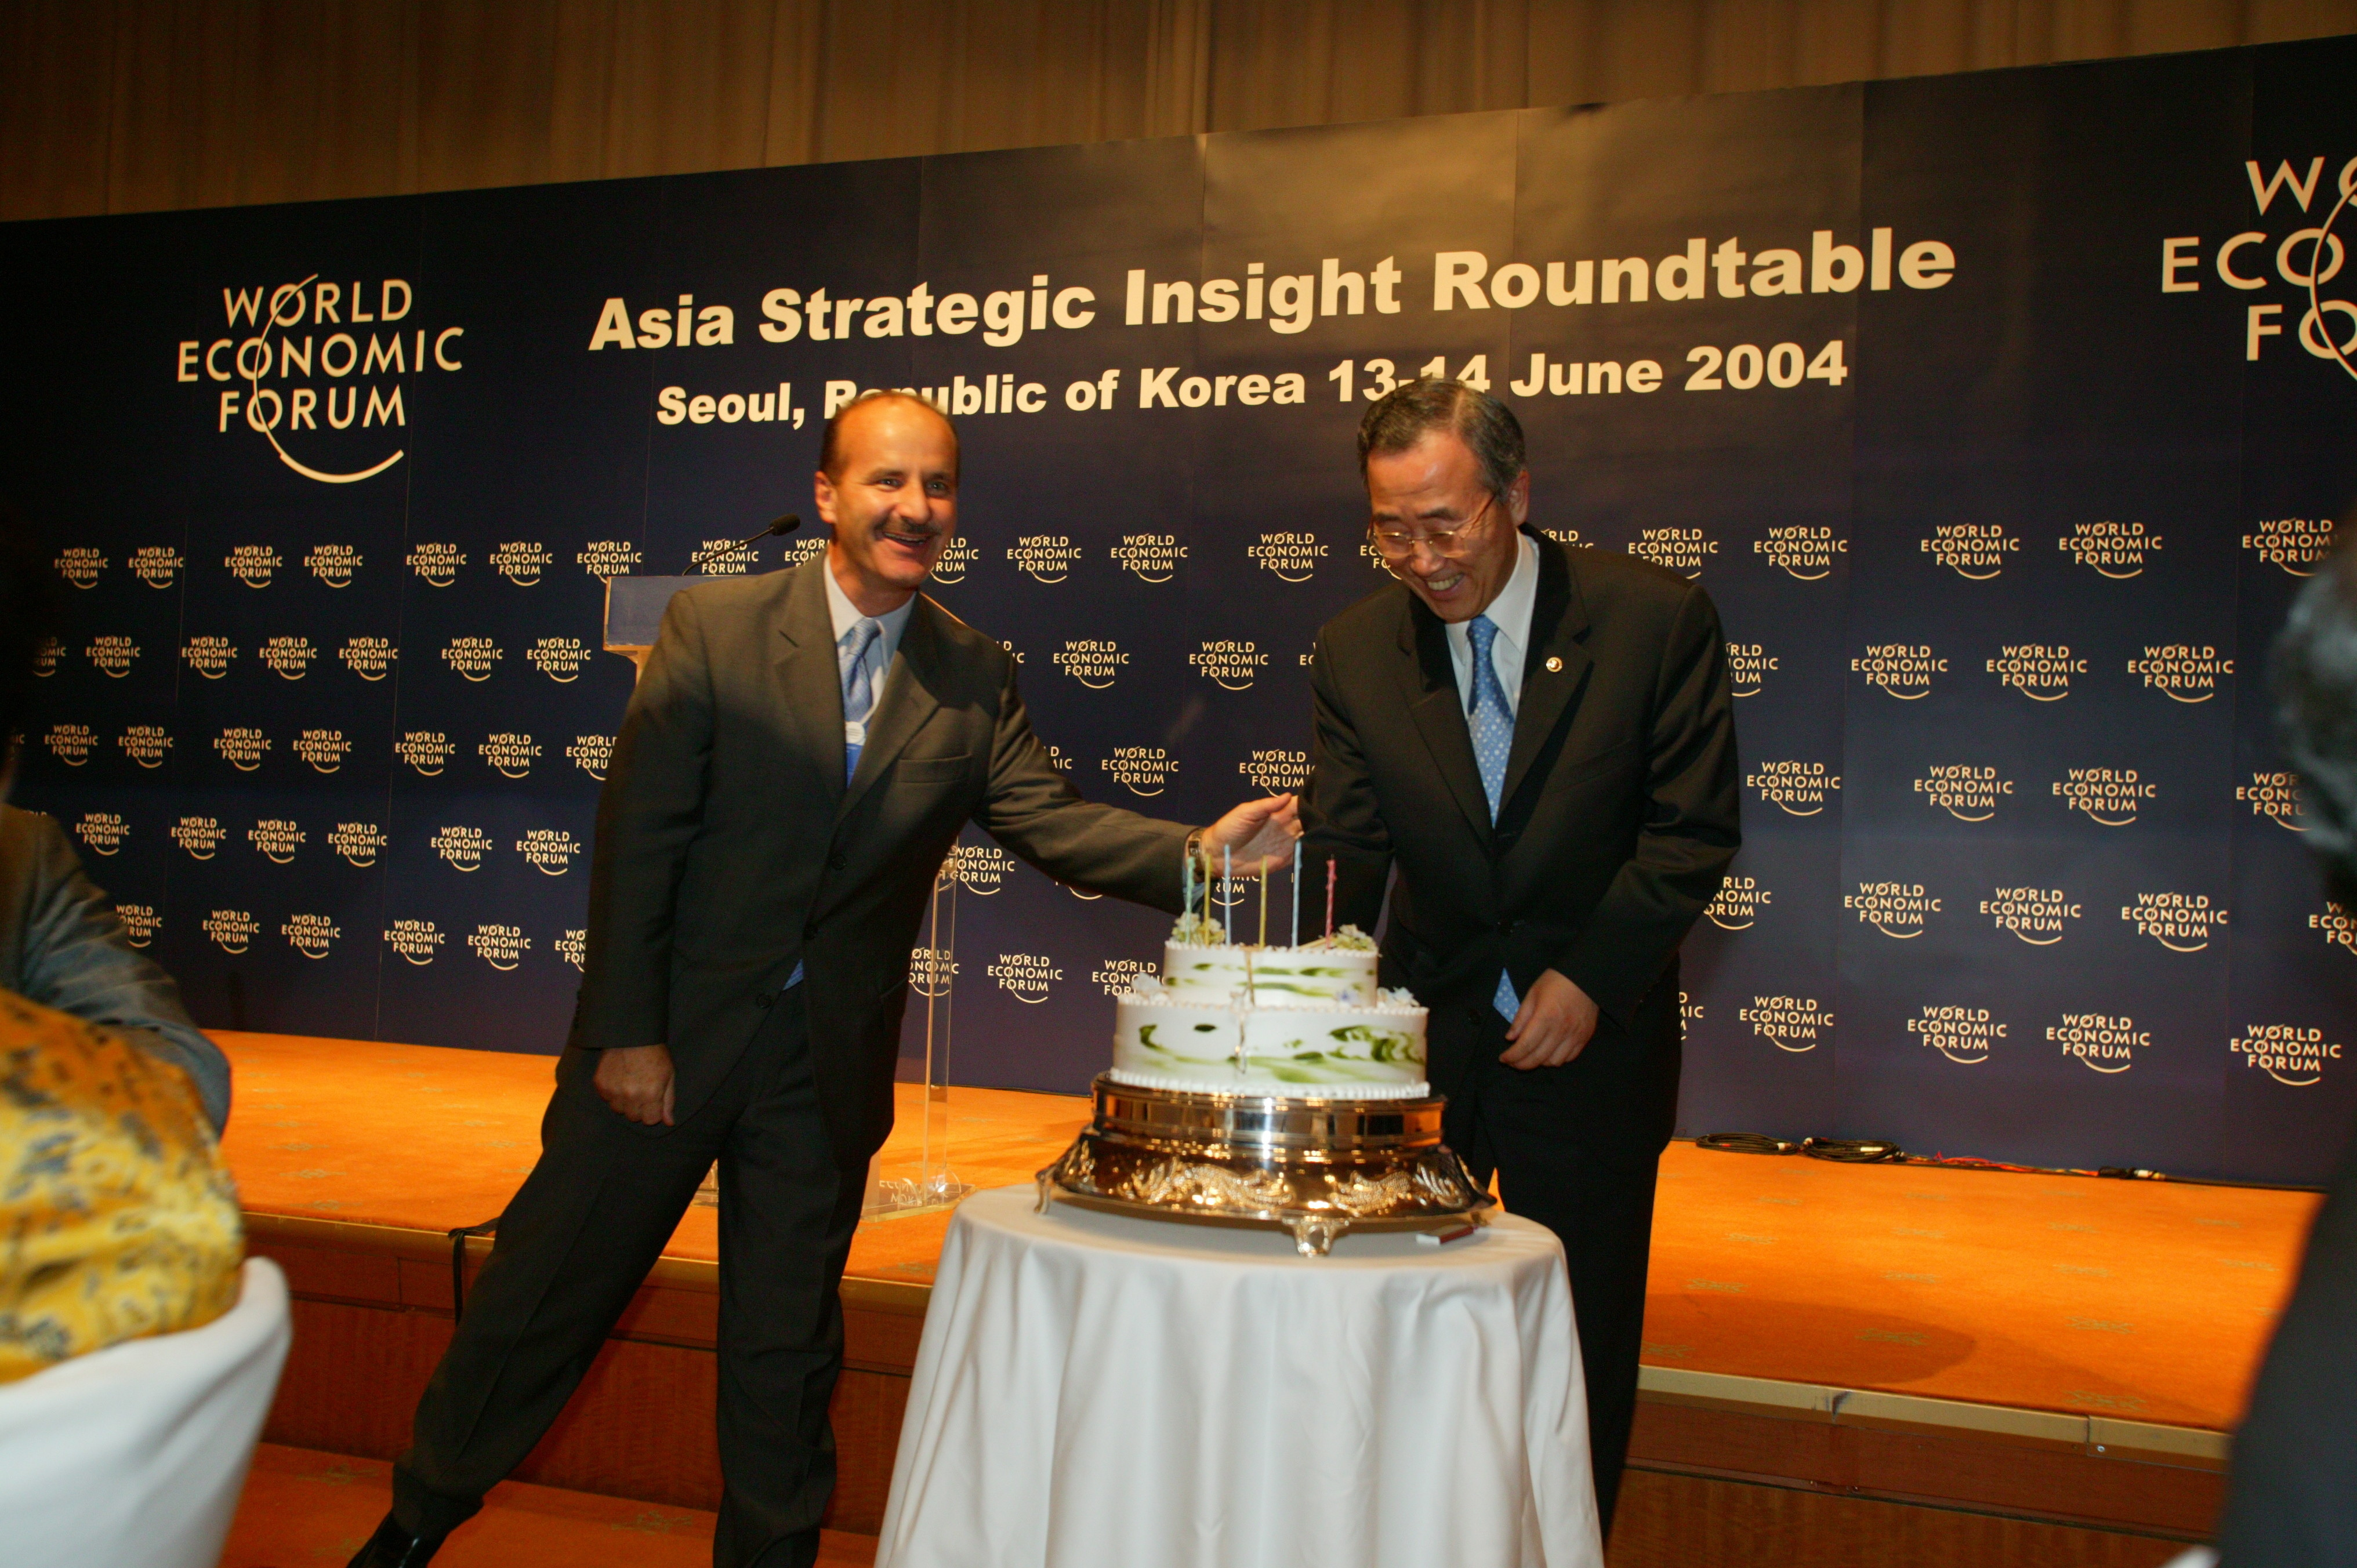 Ban Ki Moon, Minister of Foreign Affairs and Trade of the Republic of Korea, celebrating his birthday at the Welcome Reception